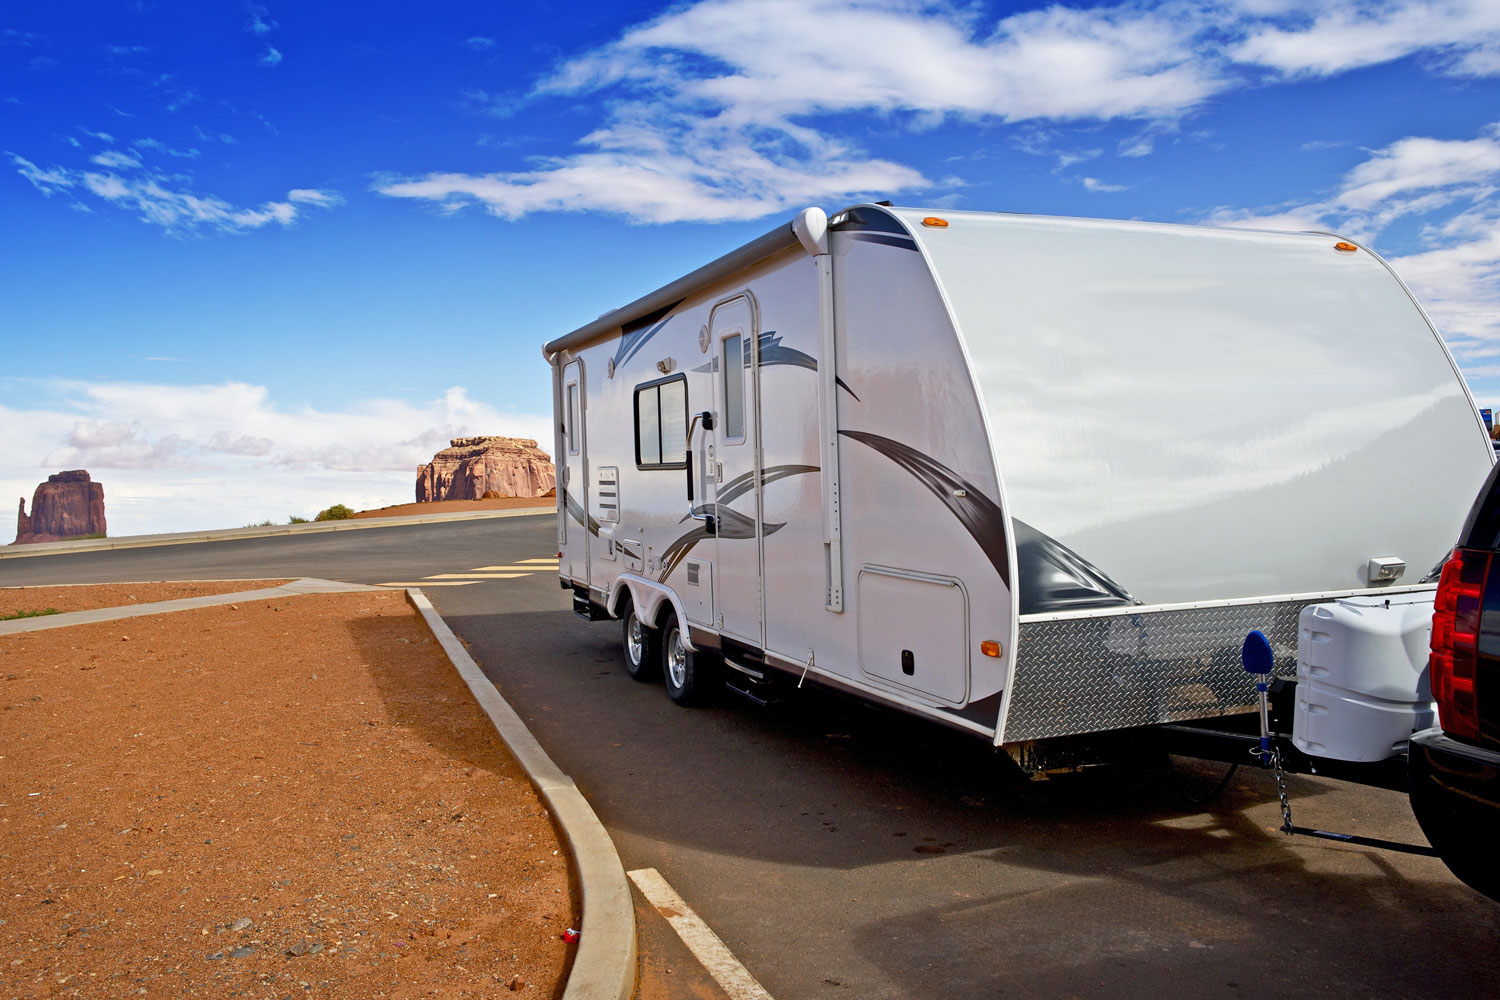 RV propane system safety